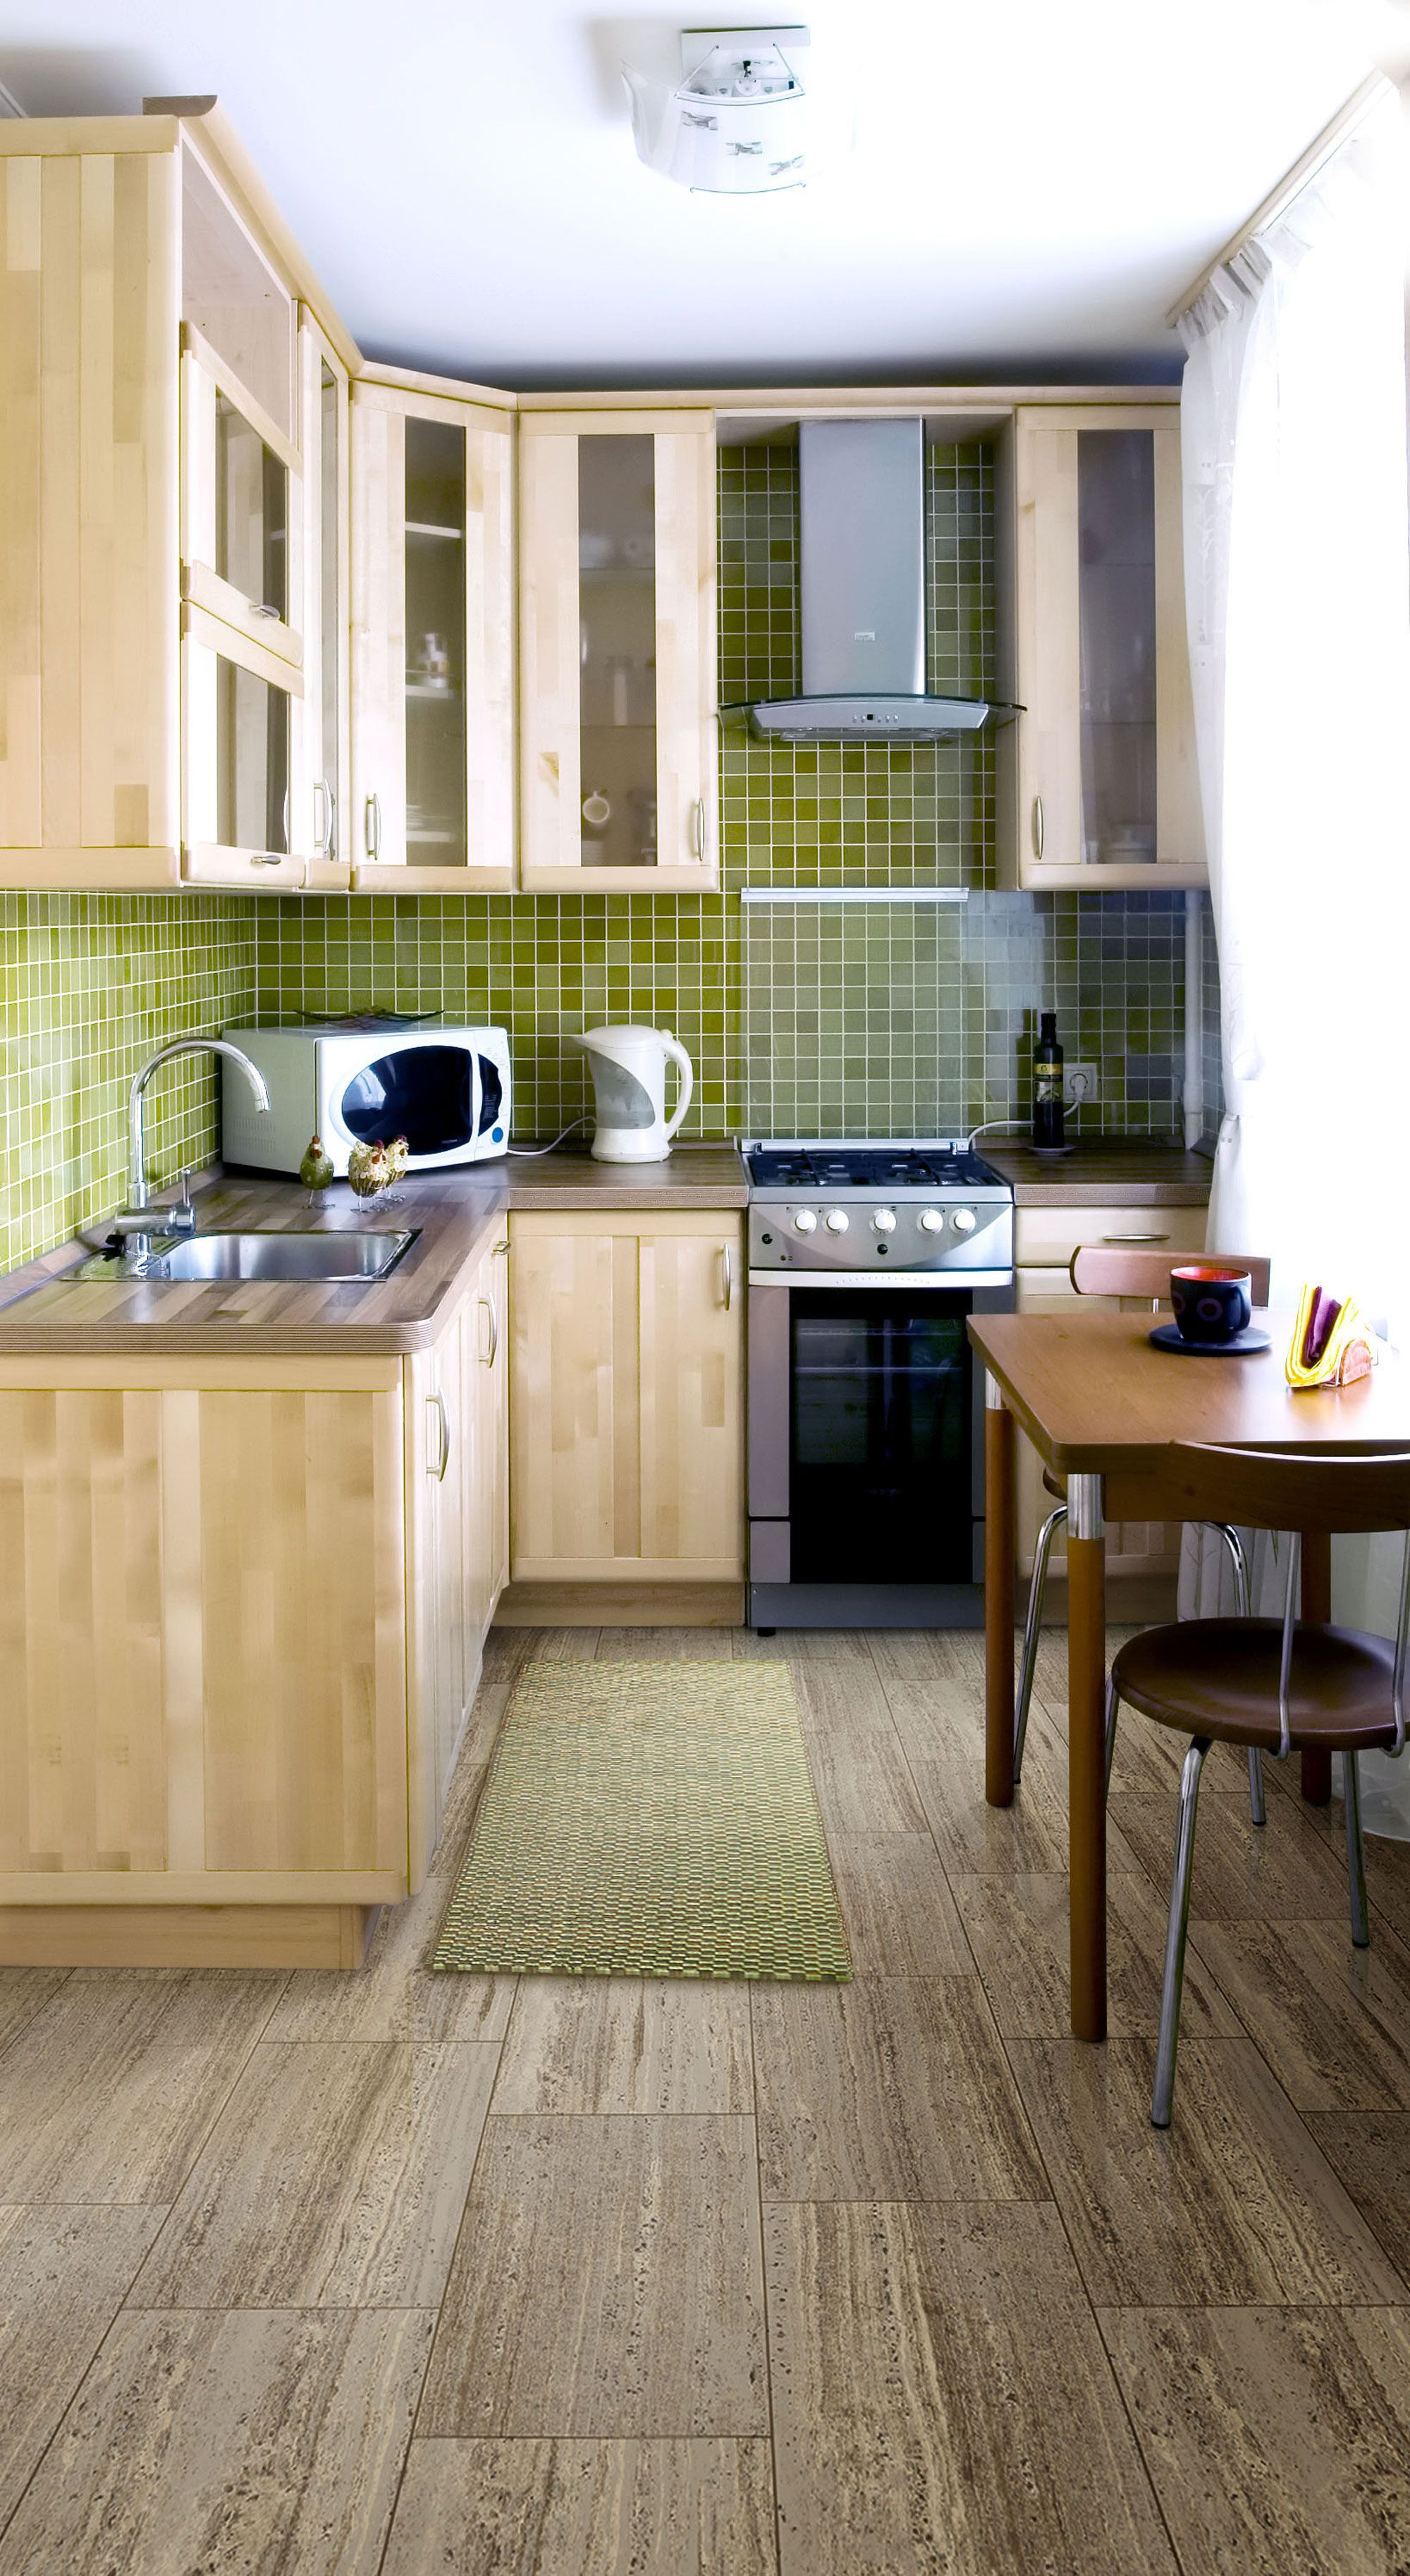 20 Clever Small Island Ideas for Your Kitchen Built in